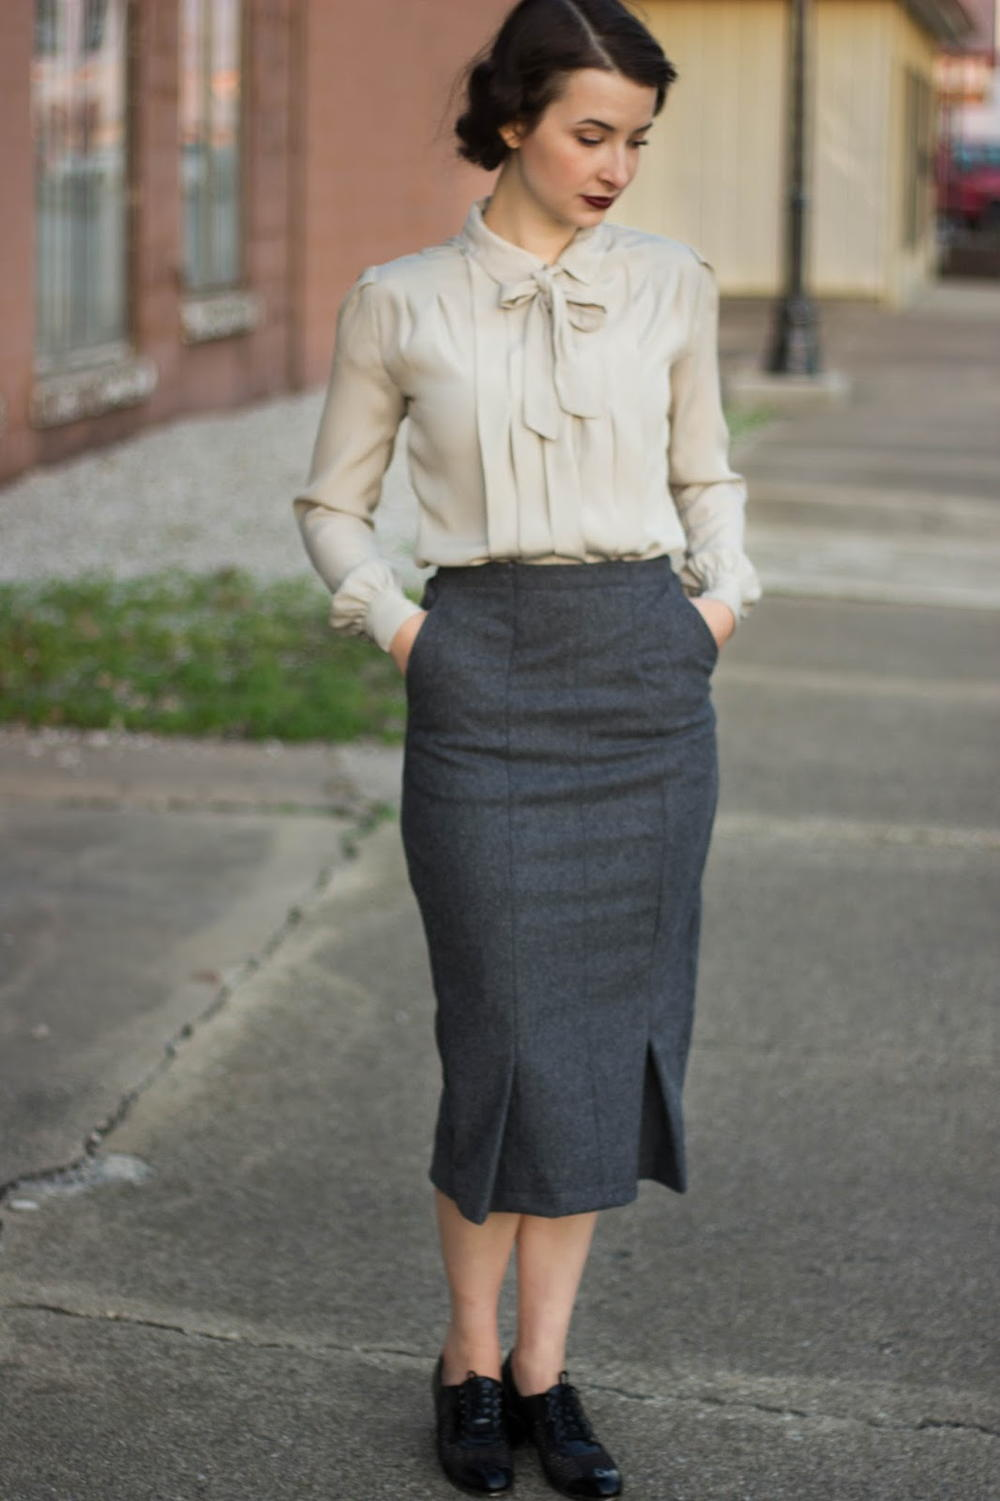 Peggy Carter Inspired Upcycled Skirt AllFreeSewingcom : Peggy Carter Upcycled SkirtExtraLarge1000ID 1680922 from www.allfreesewing.com size 1000 x 1501 jpeg 105kB